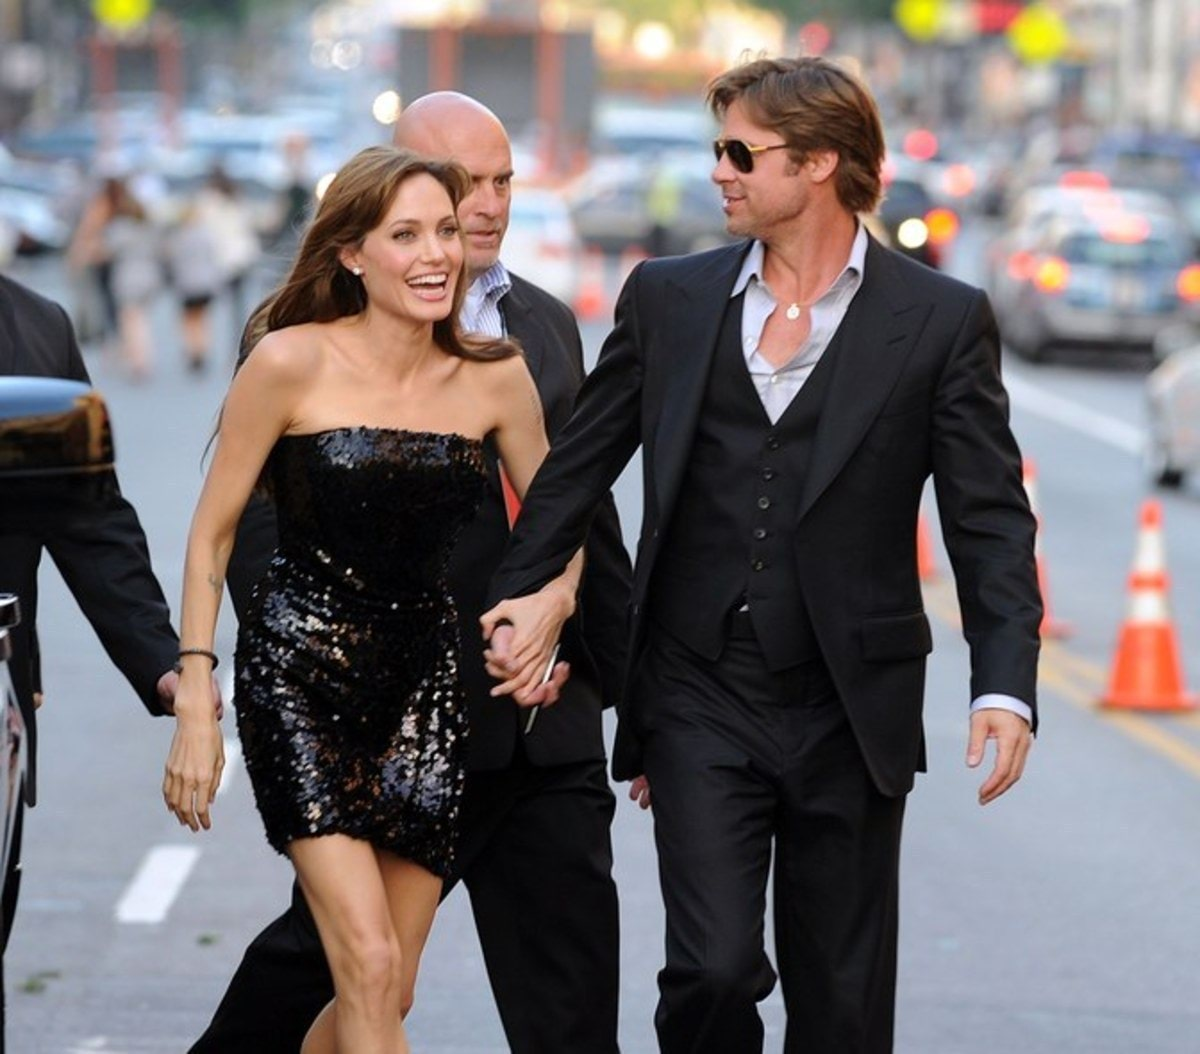 brad-pitt-angelina-jolie-relationship-married-ss09